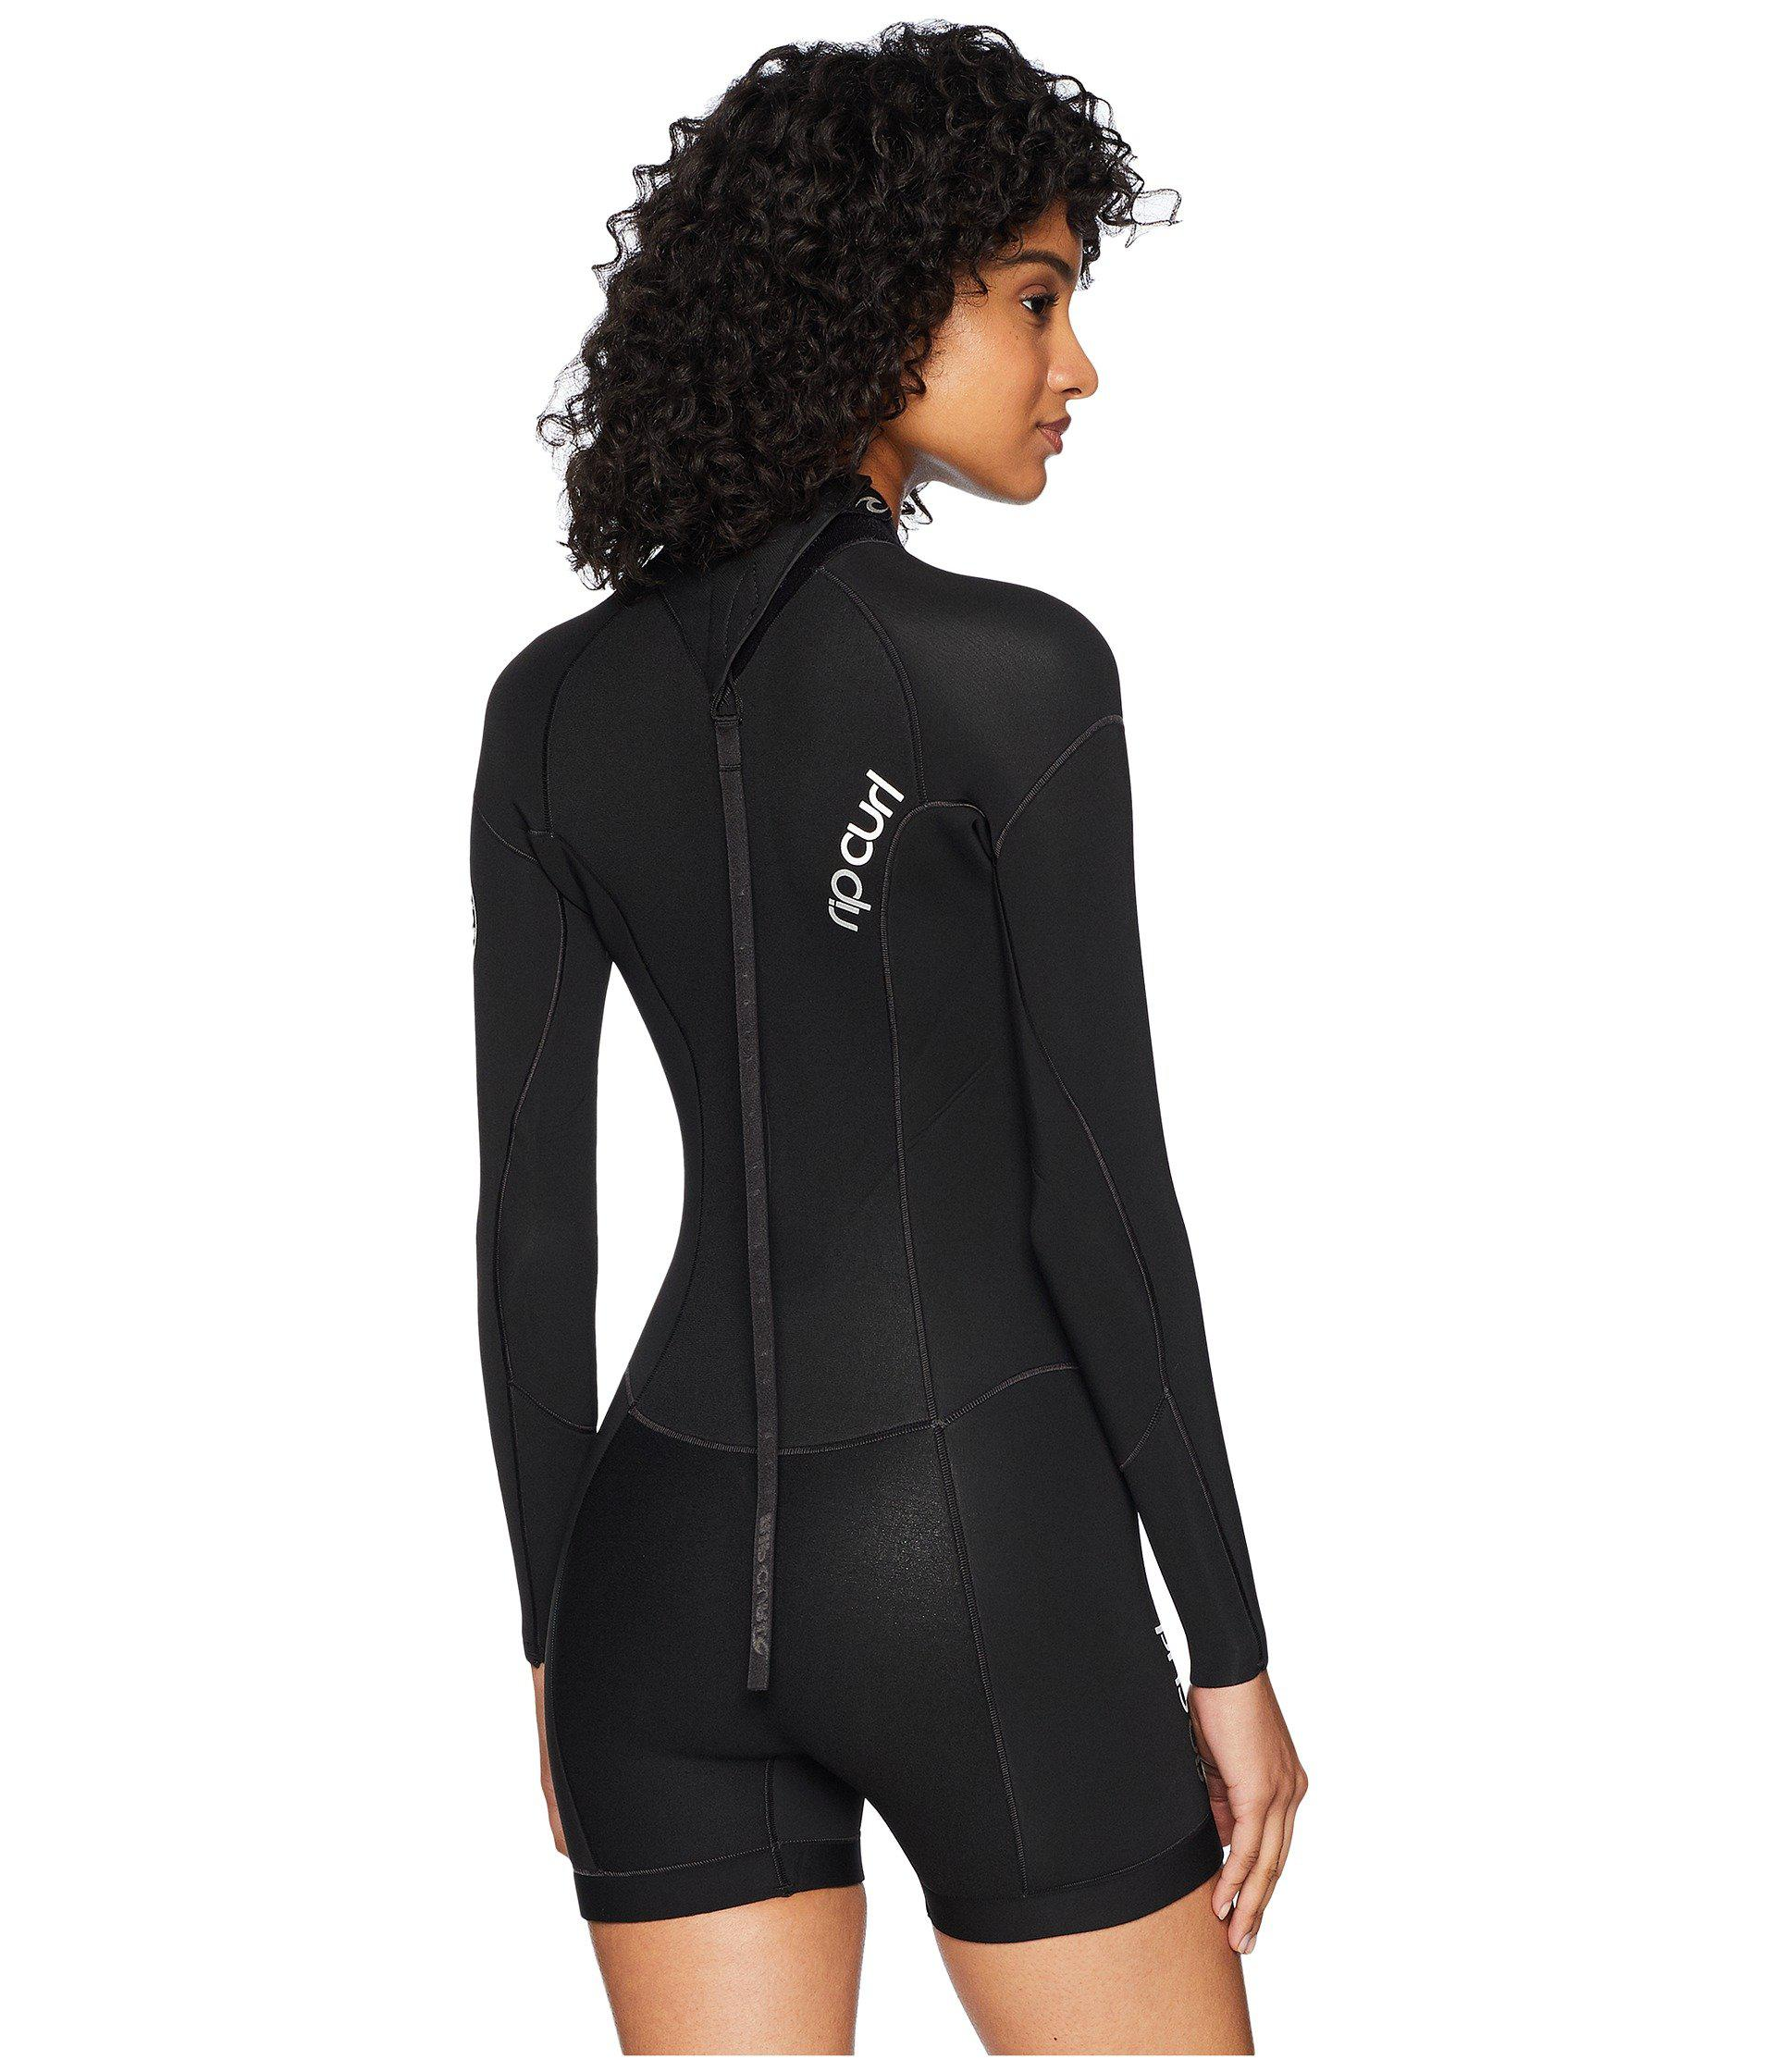 Lyst - Rip Curl D patrol 22 Long Sleeve Spring Suit (peach) Women s ... 23e722497